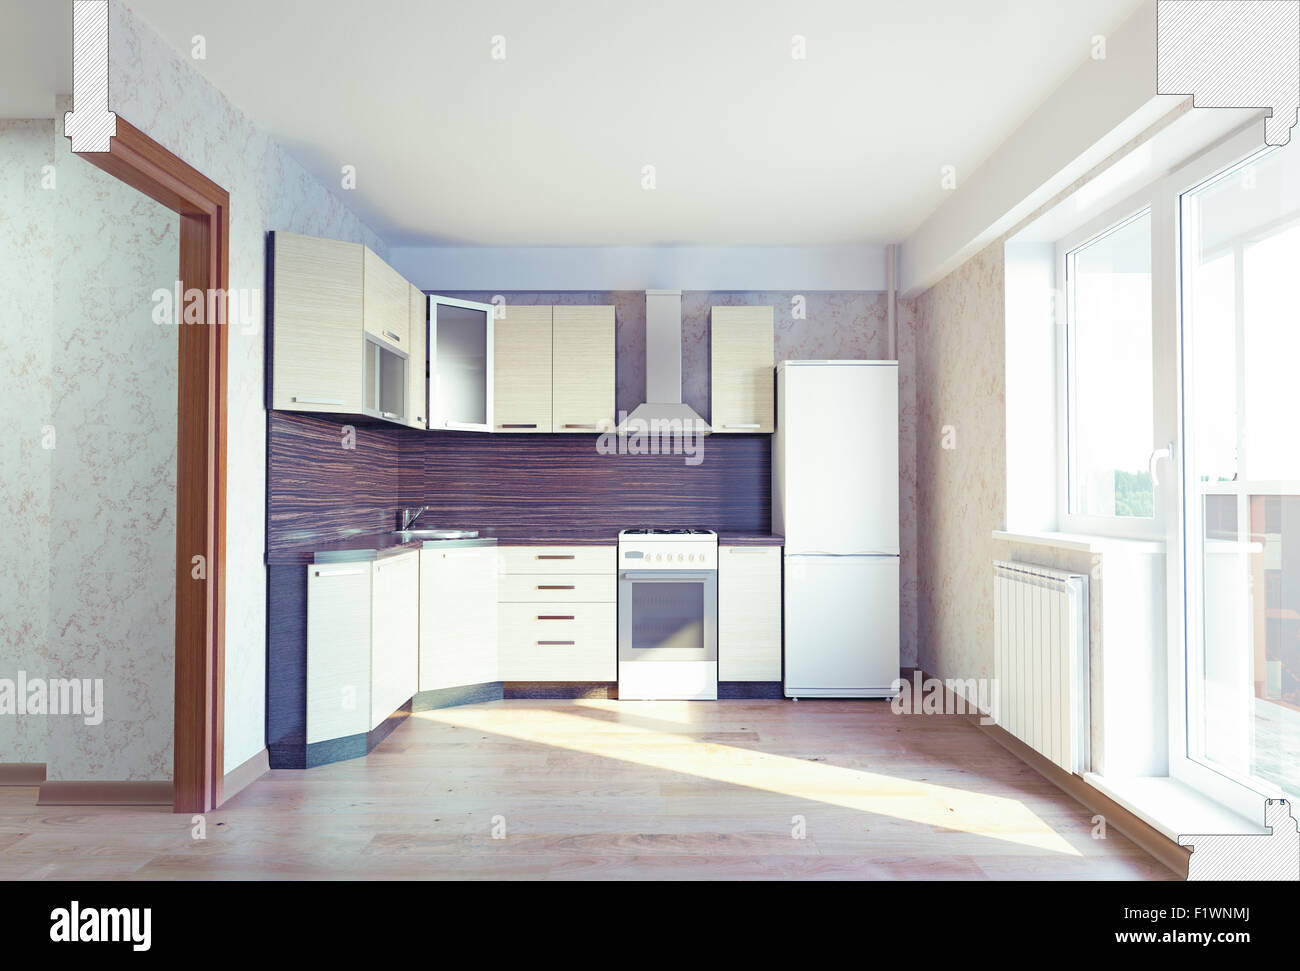 modern kitchen interior with cut section of the room. 3 concept ...